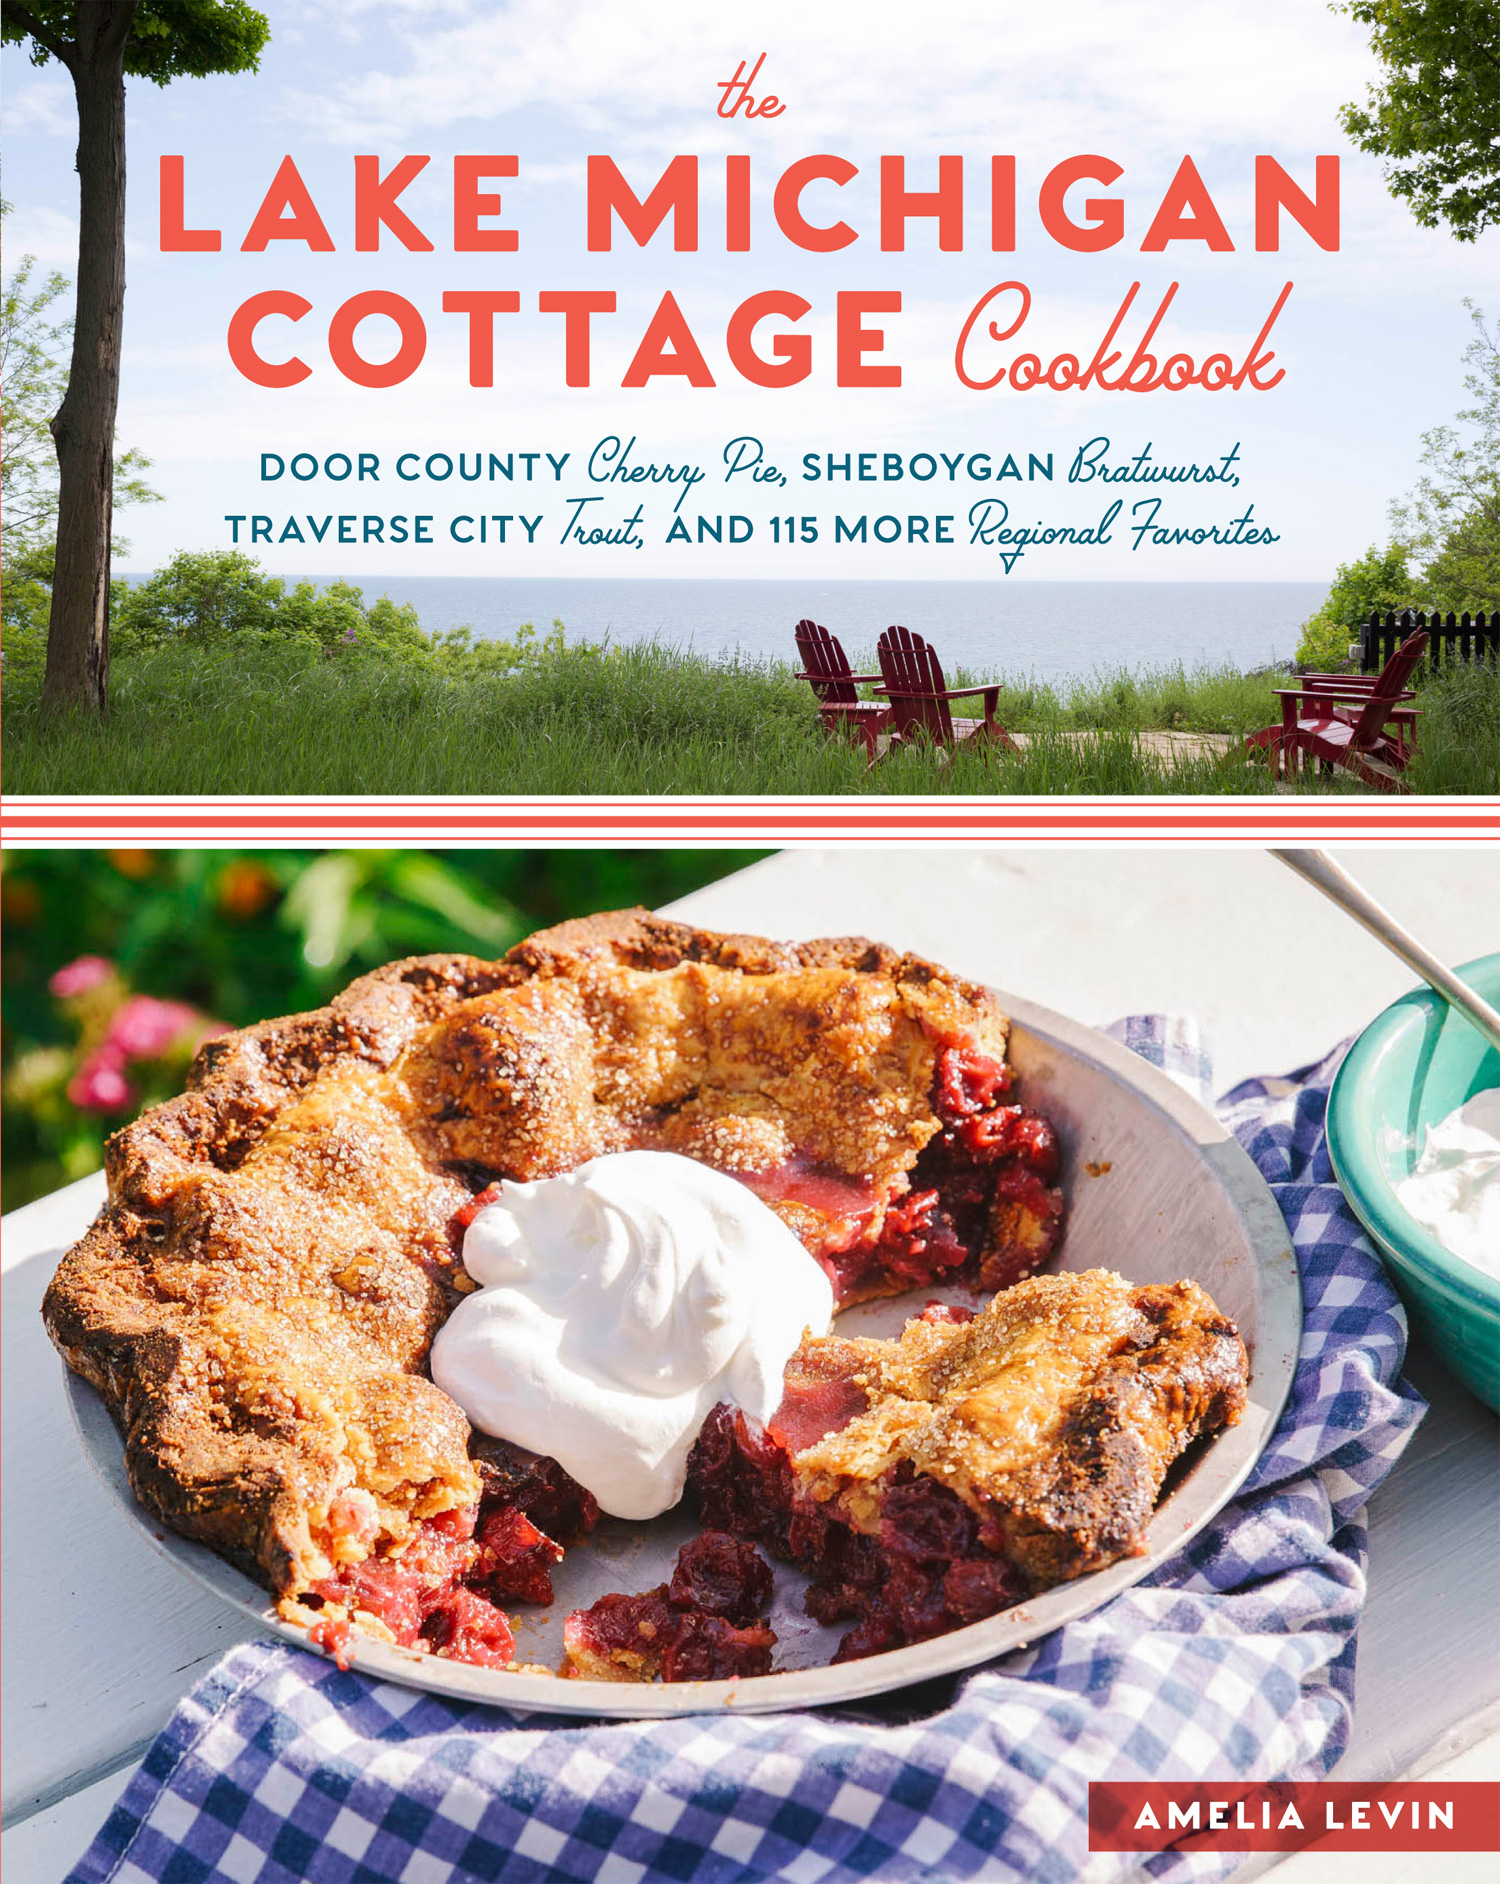 Excerpted from The Lake Michigan Cottage Cookbook Copyright Teri Genovese (top) and Johnny Autry (bottom). Used with permission from Storey Publishing. See cookbook tear sheets  here .